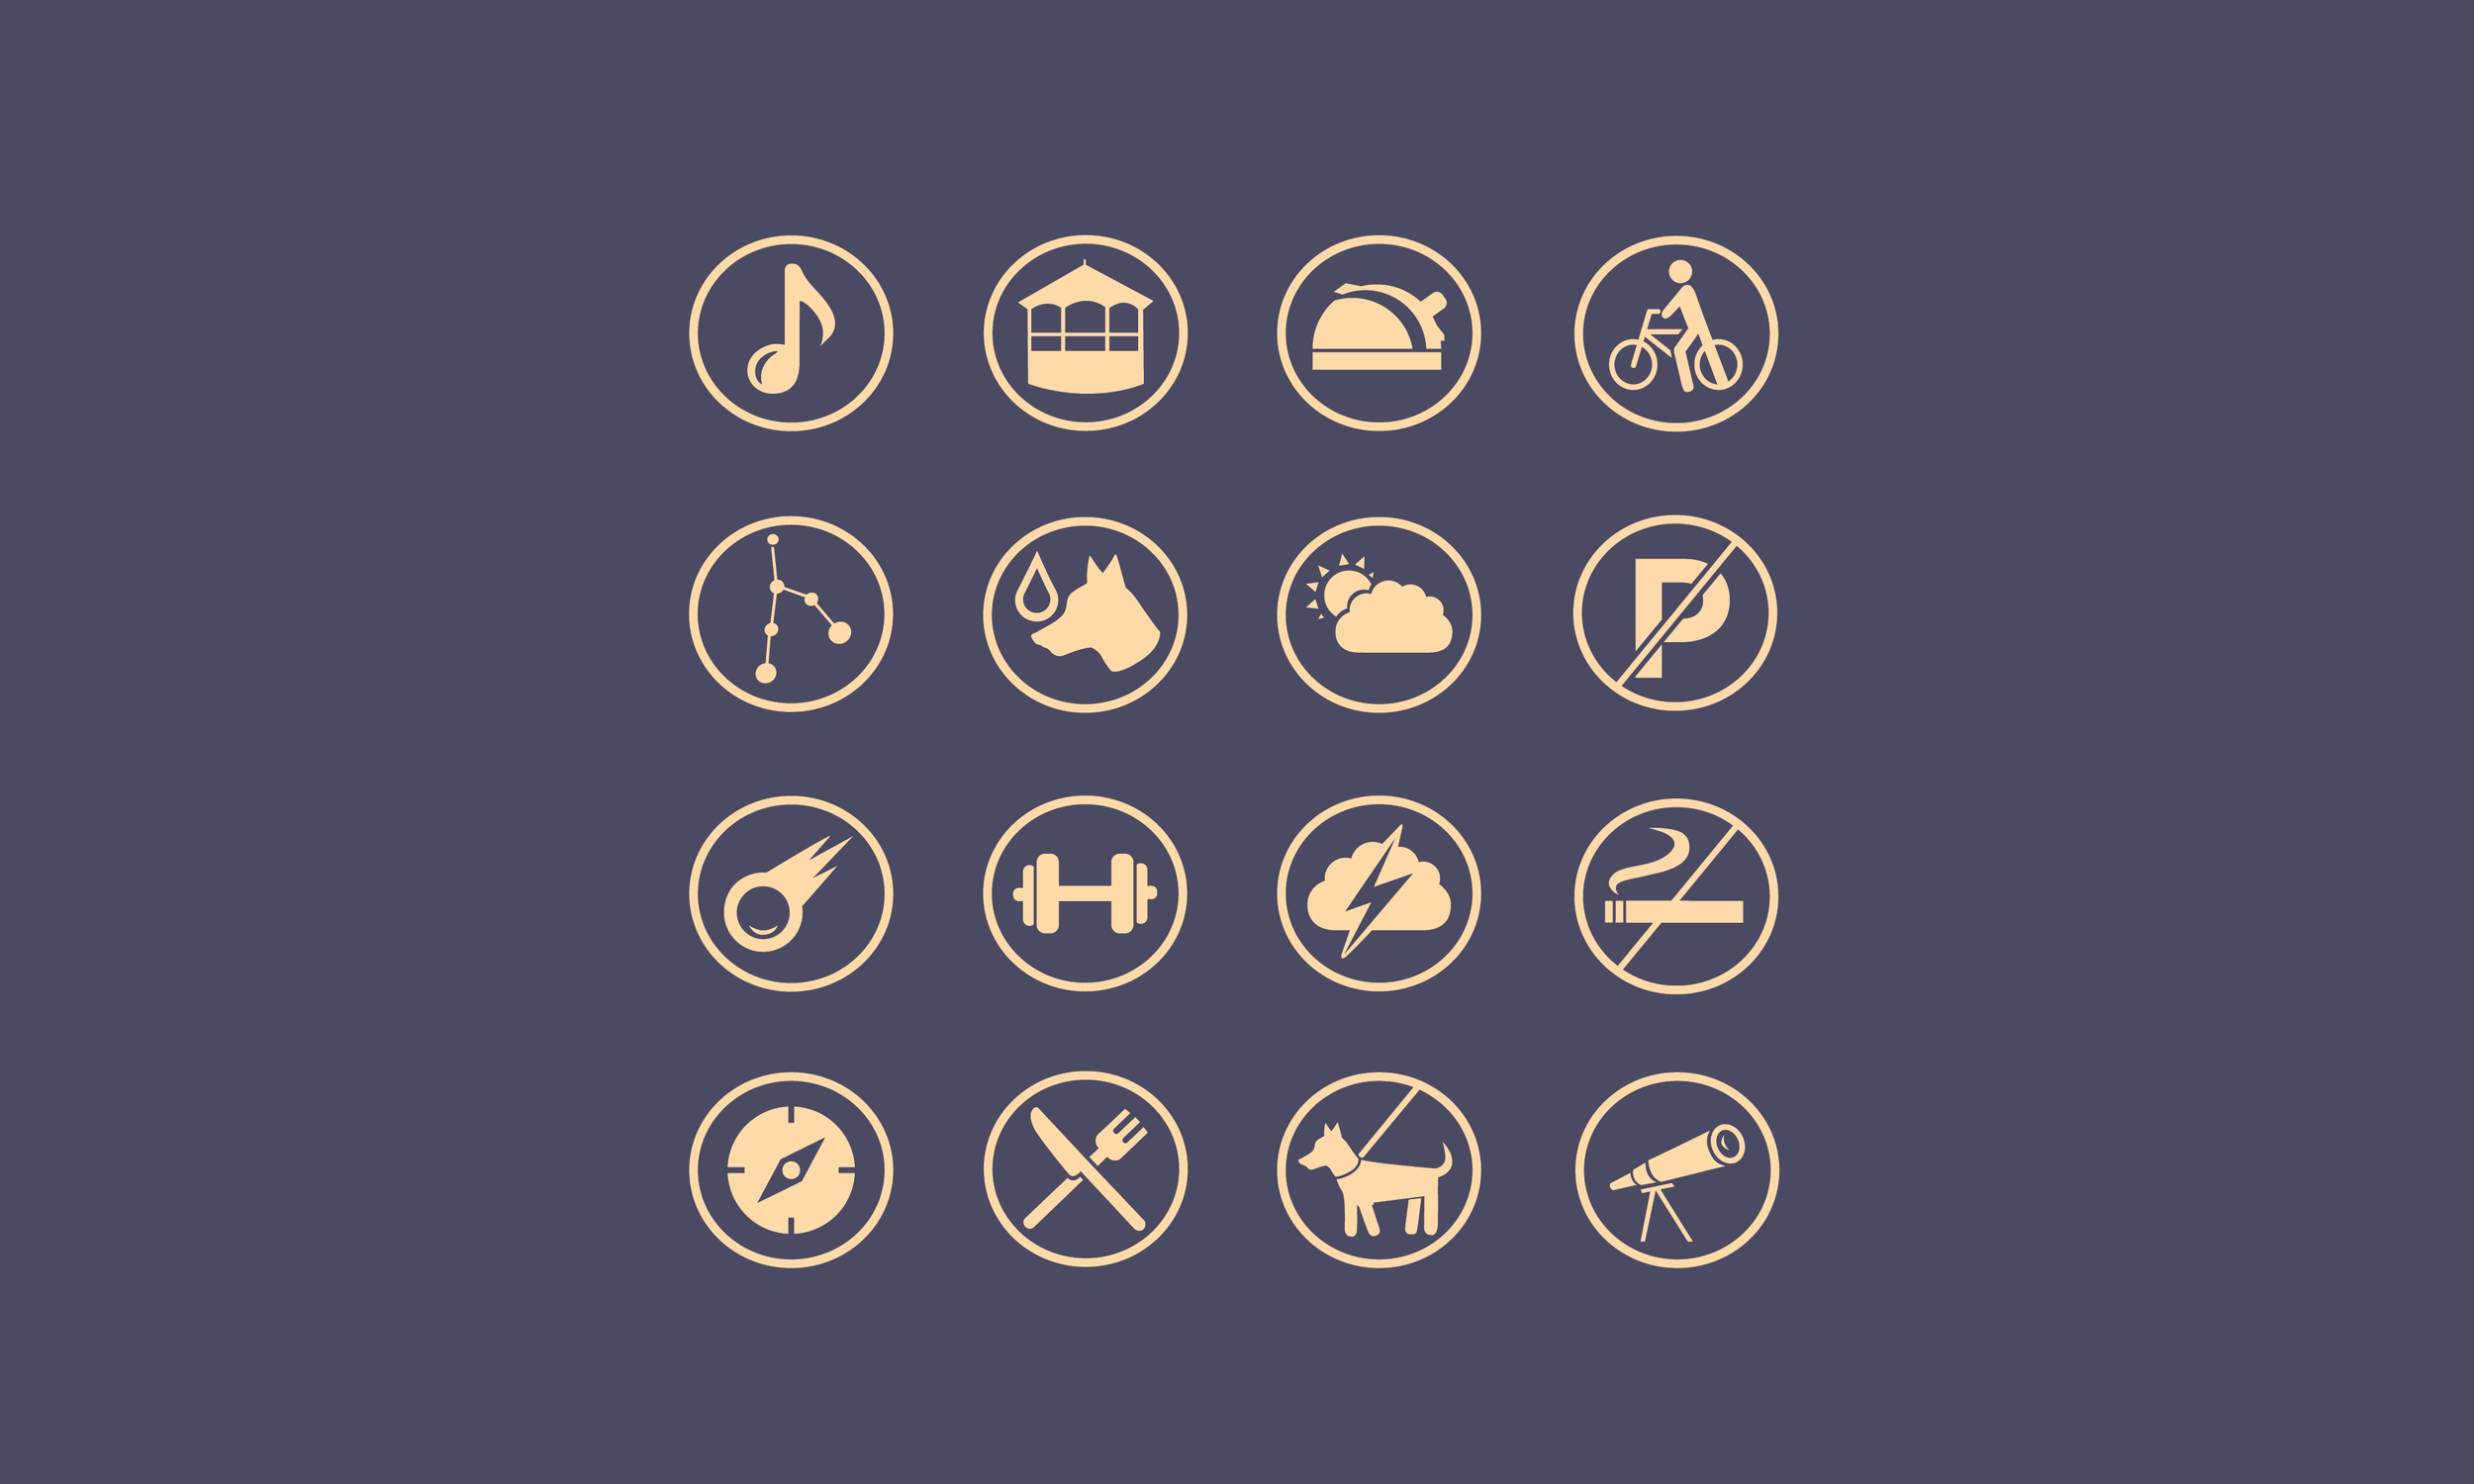 icons_obshill-01.png